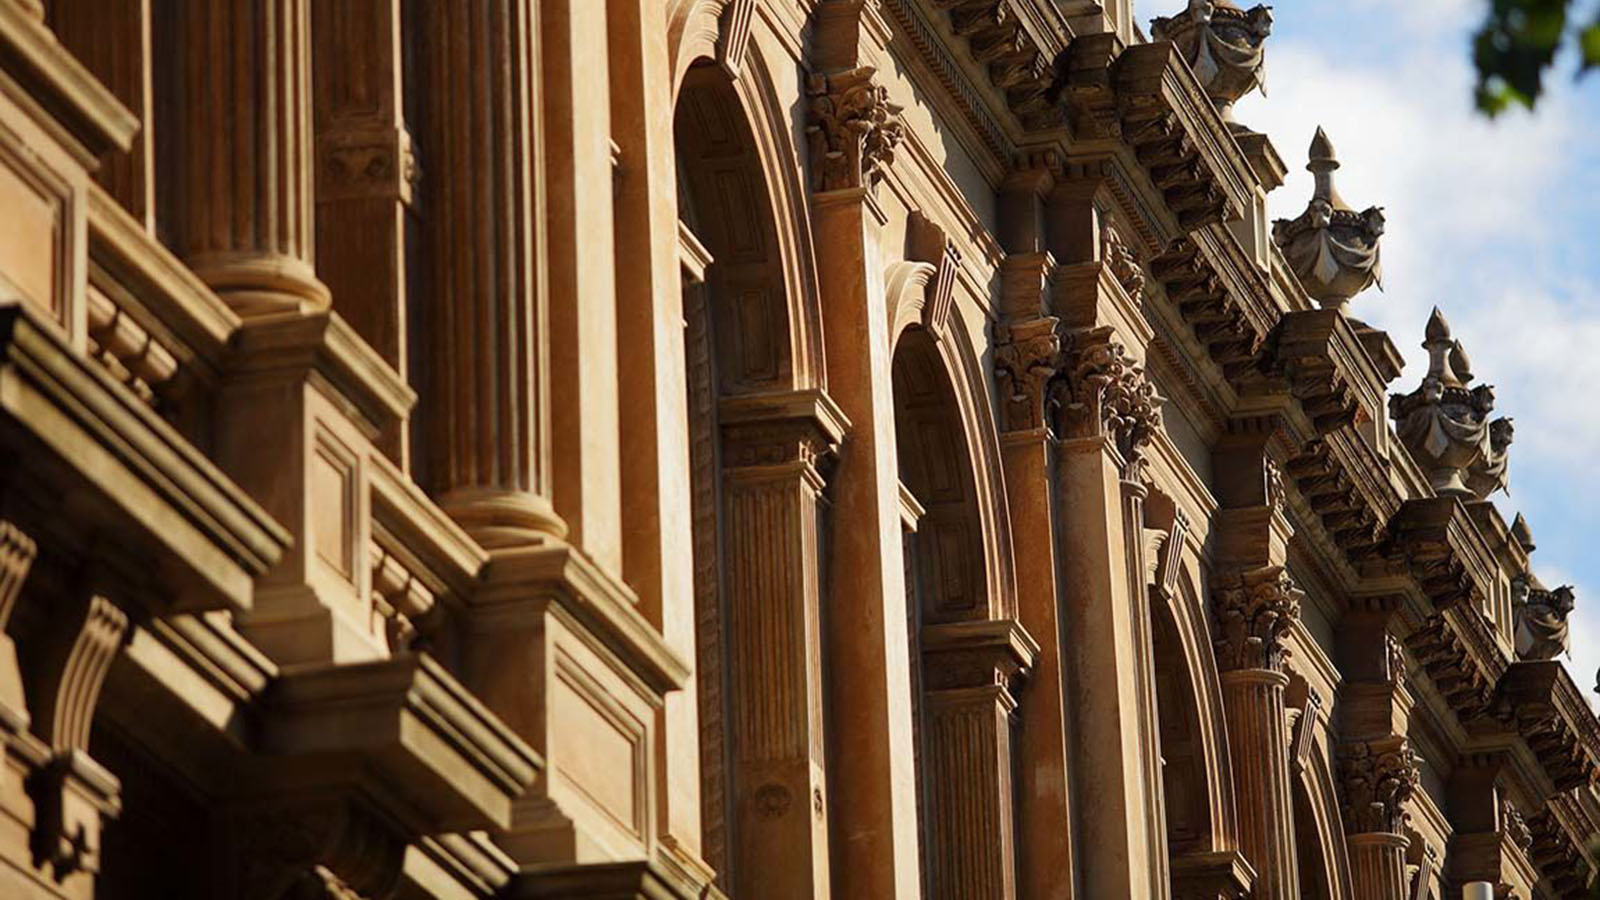 Bendigo Post Office, Goldfields, Victoria, Australia